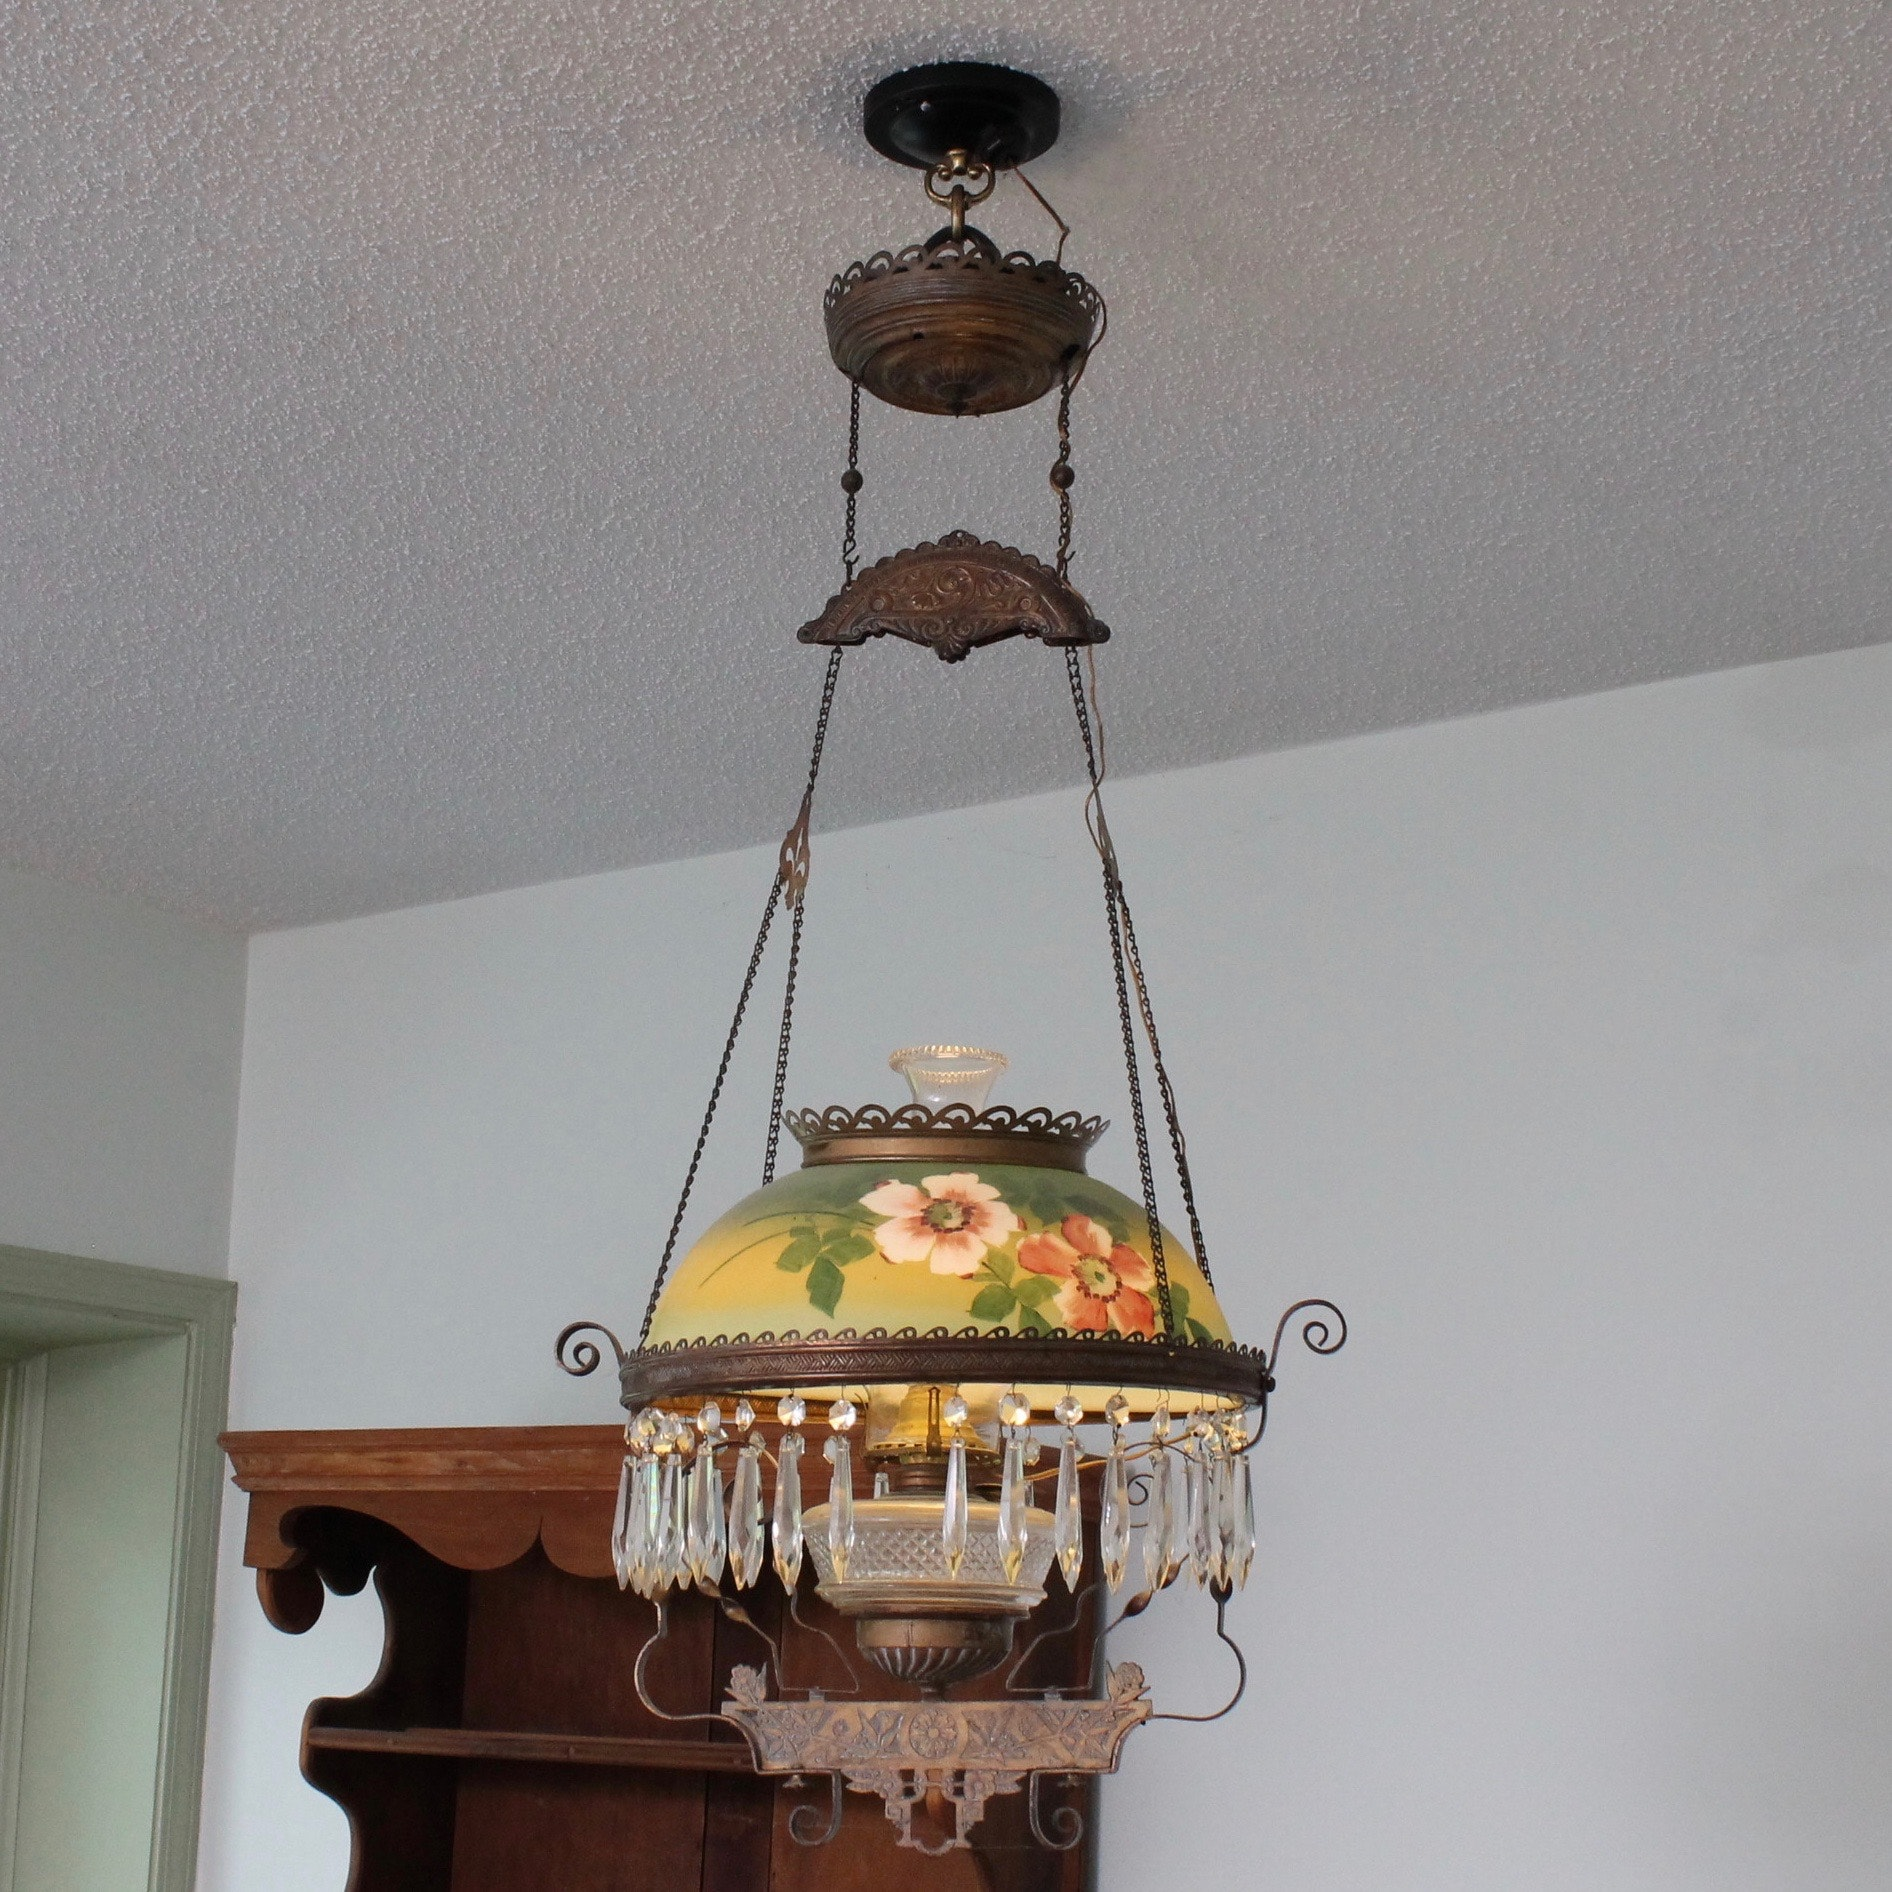 Converted Victorian Hanging Parlor Light